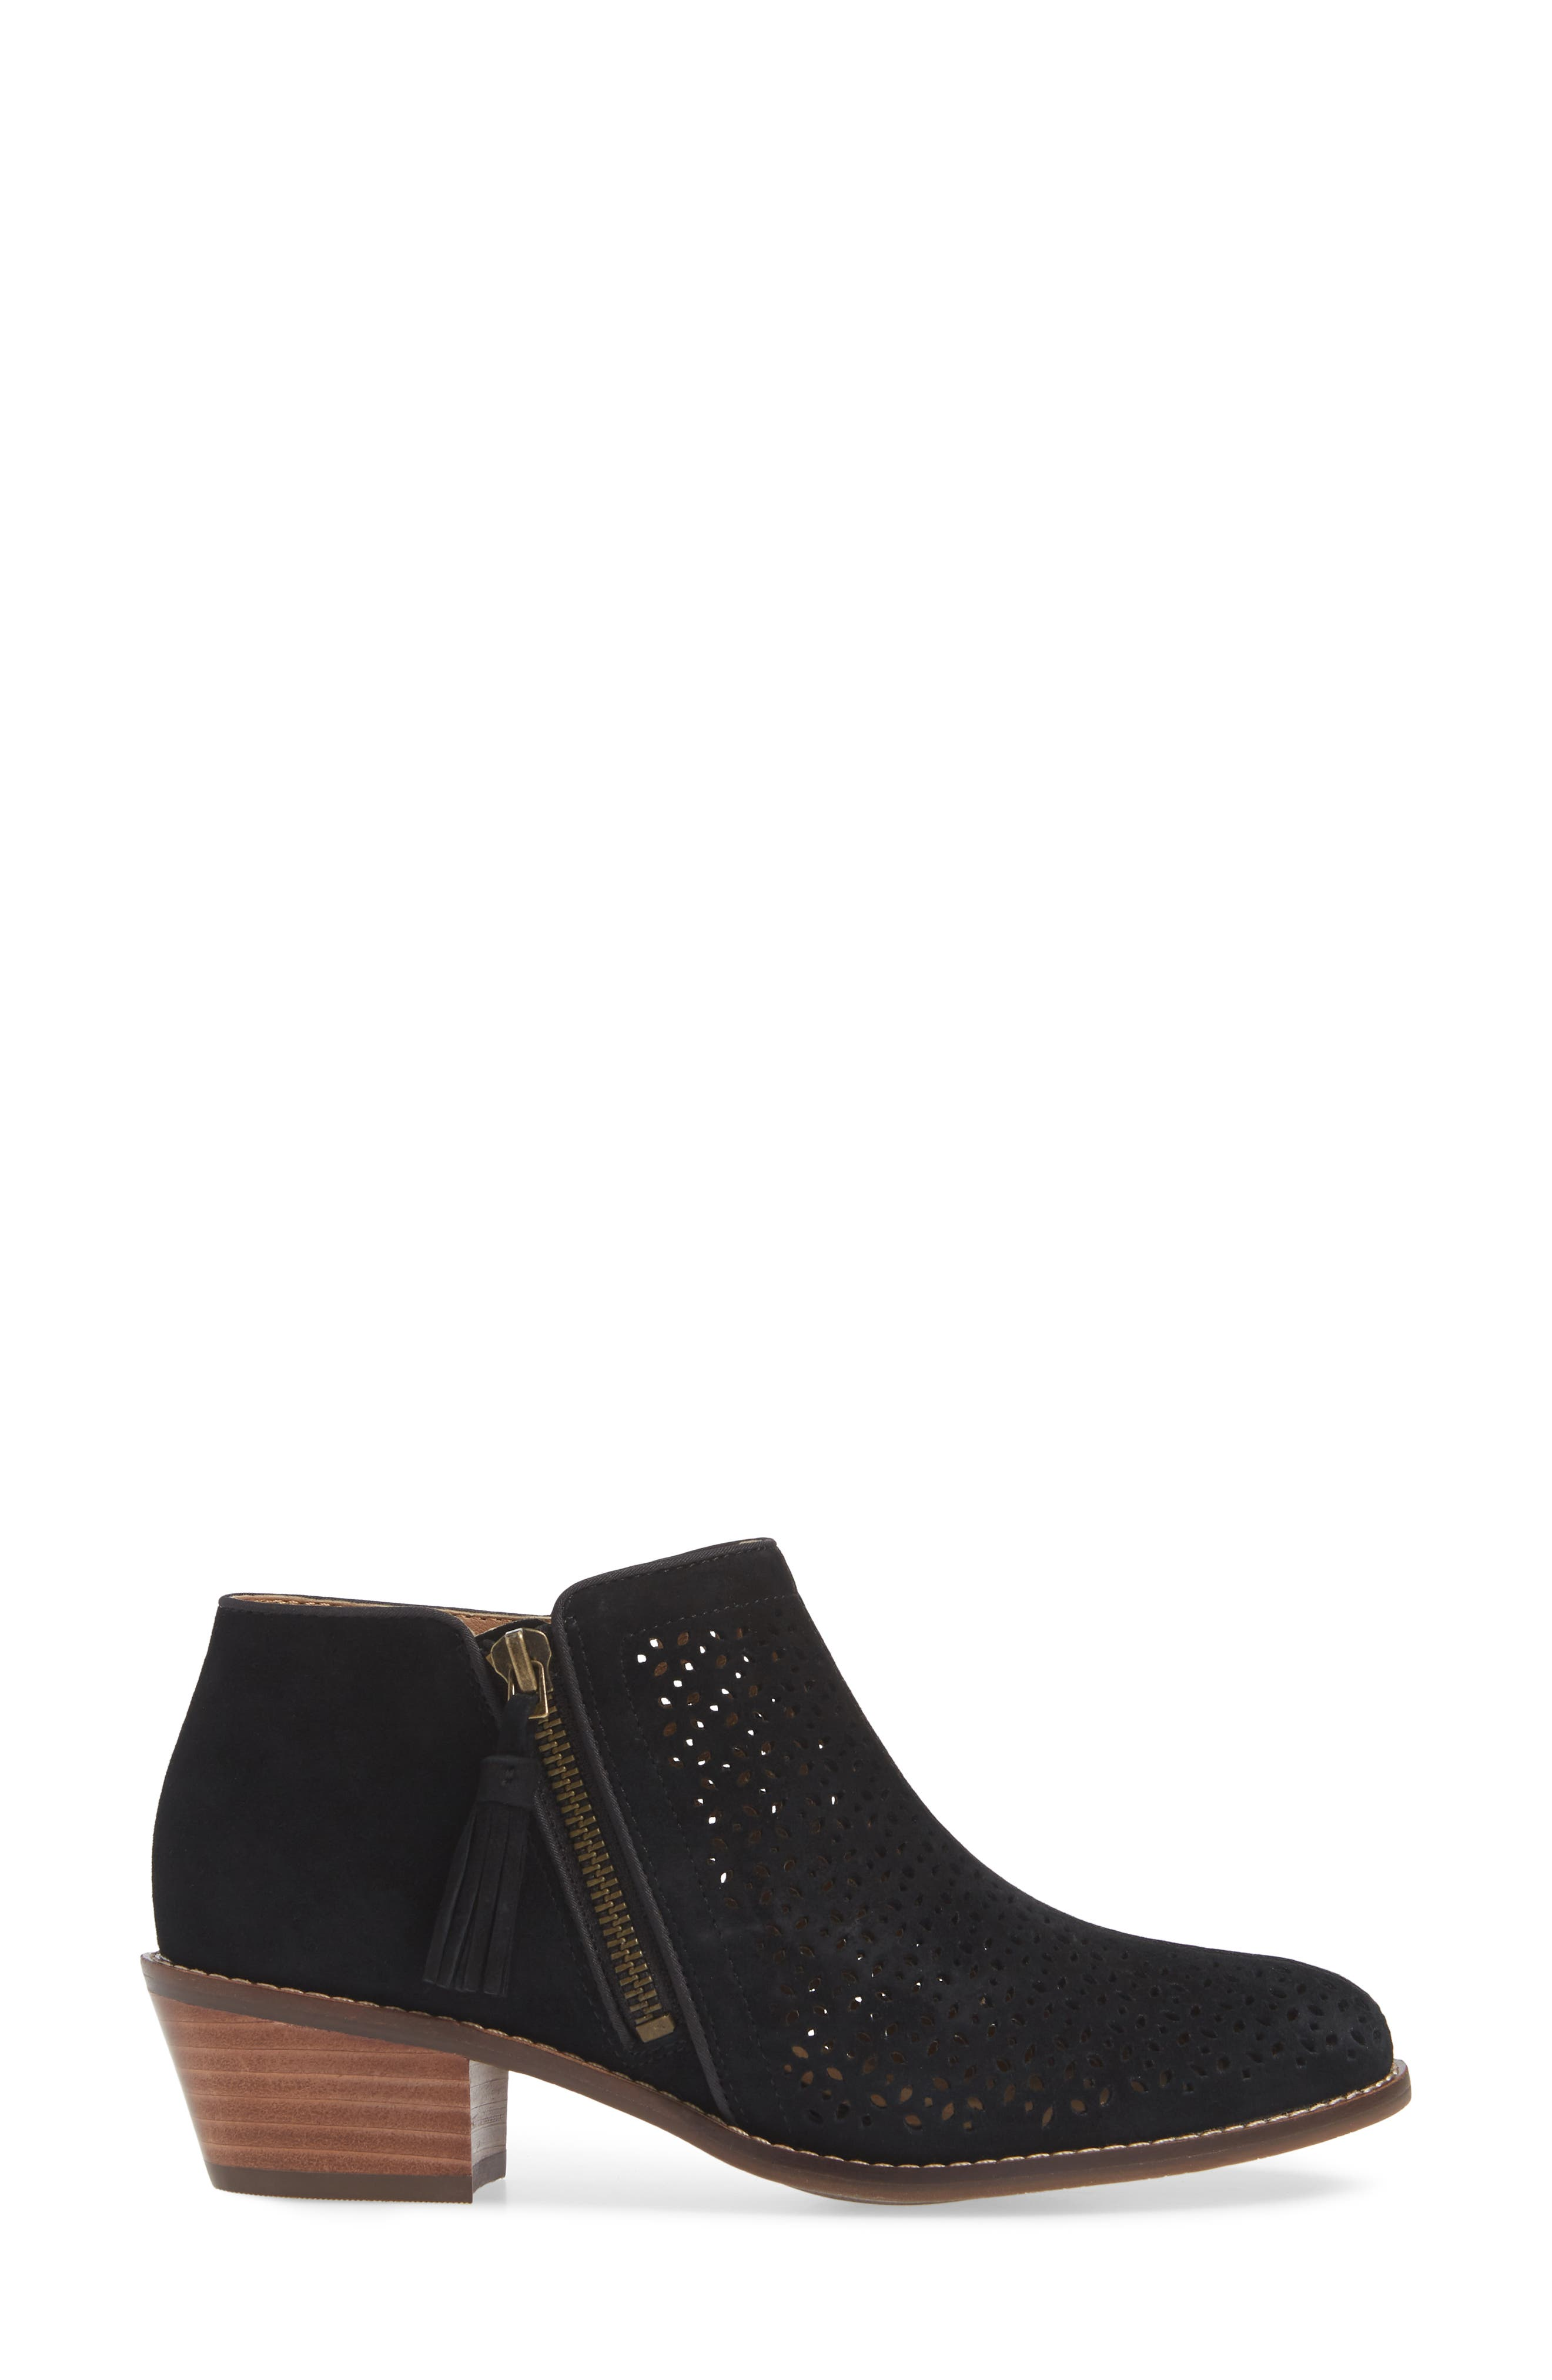 Daytona Perforated Bootie,                             Alternate thumbnail 3, color,                             BLACK SUEDE